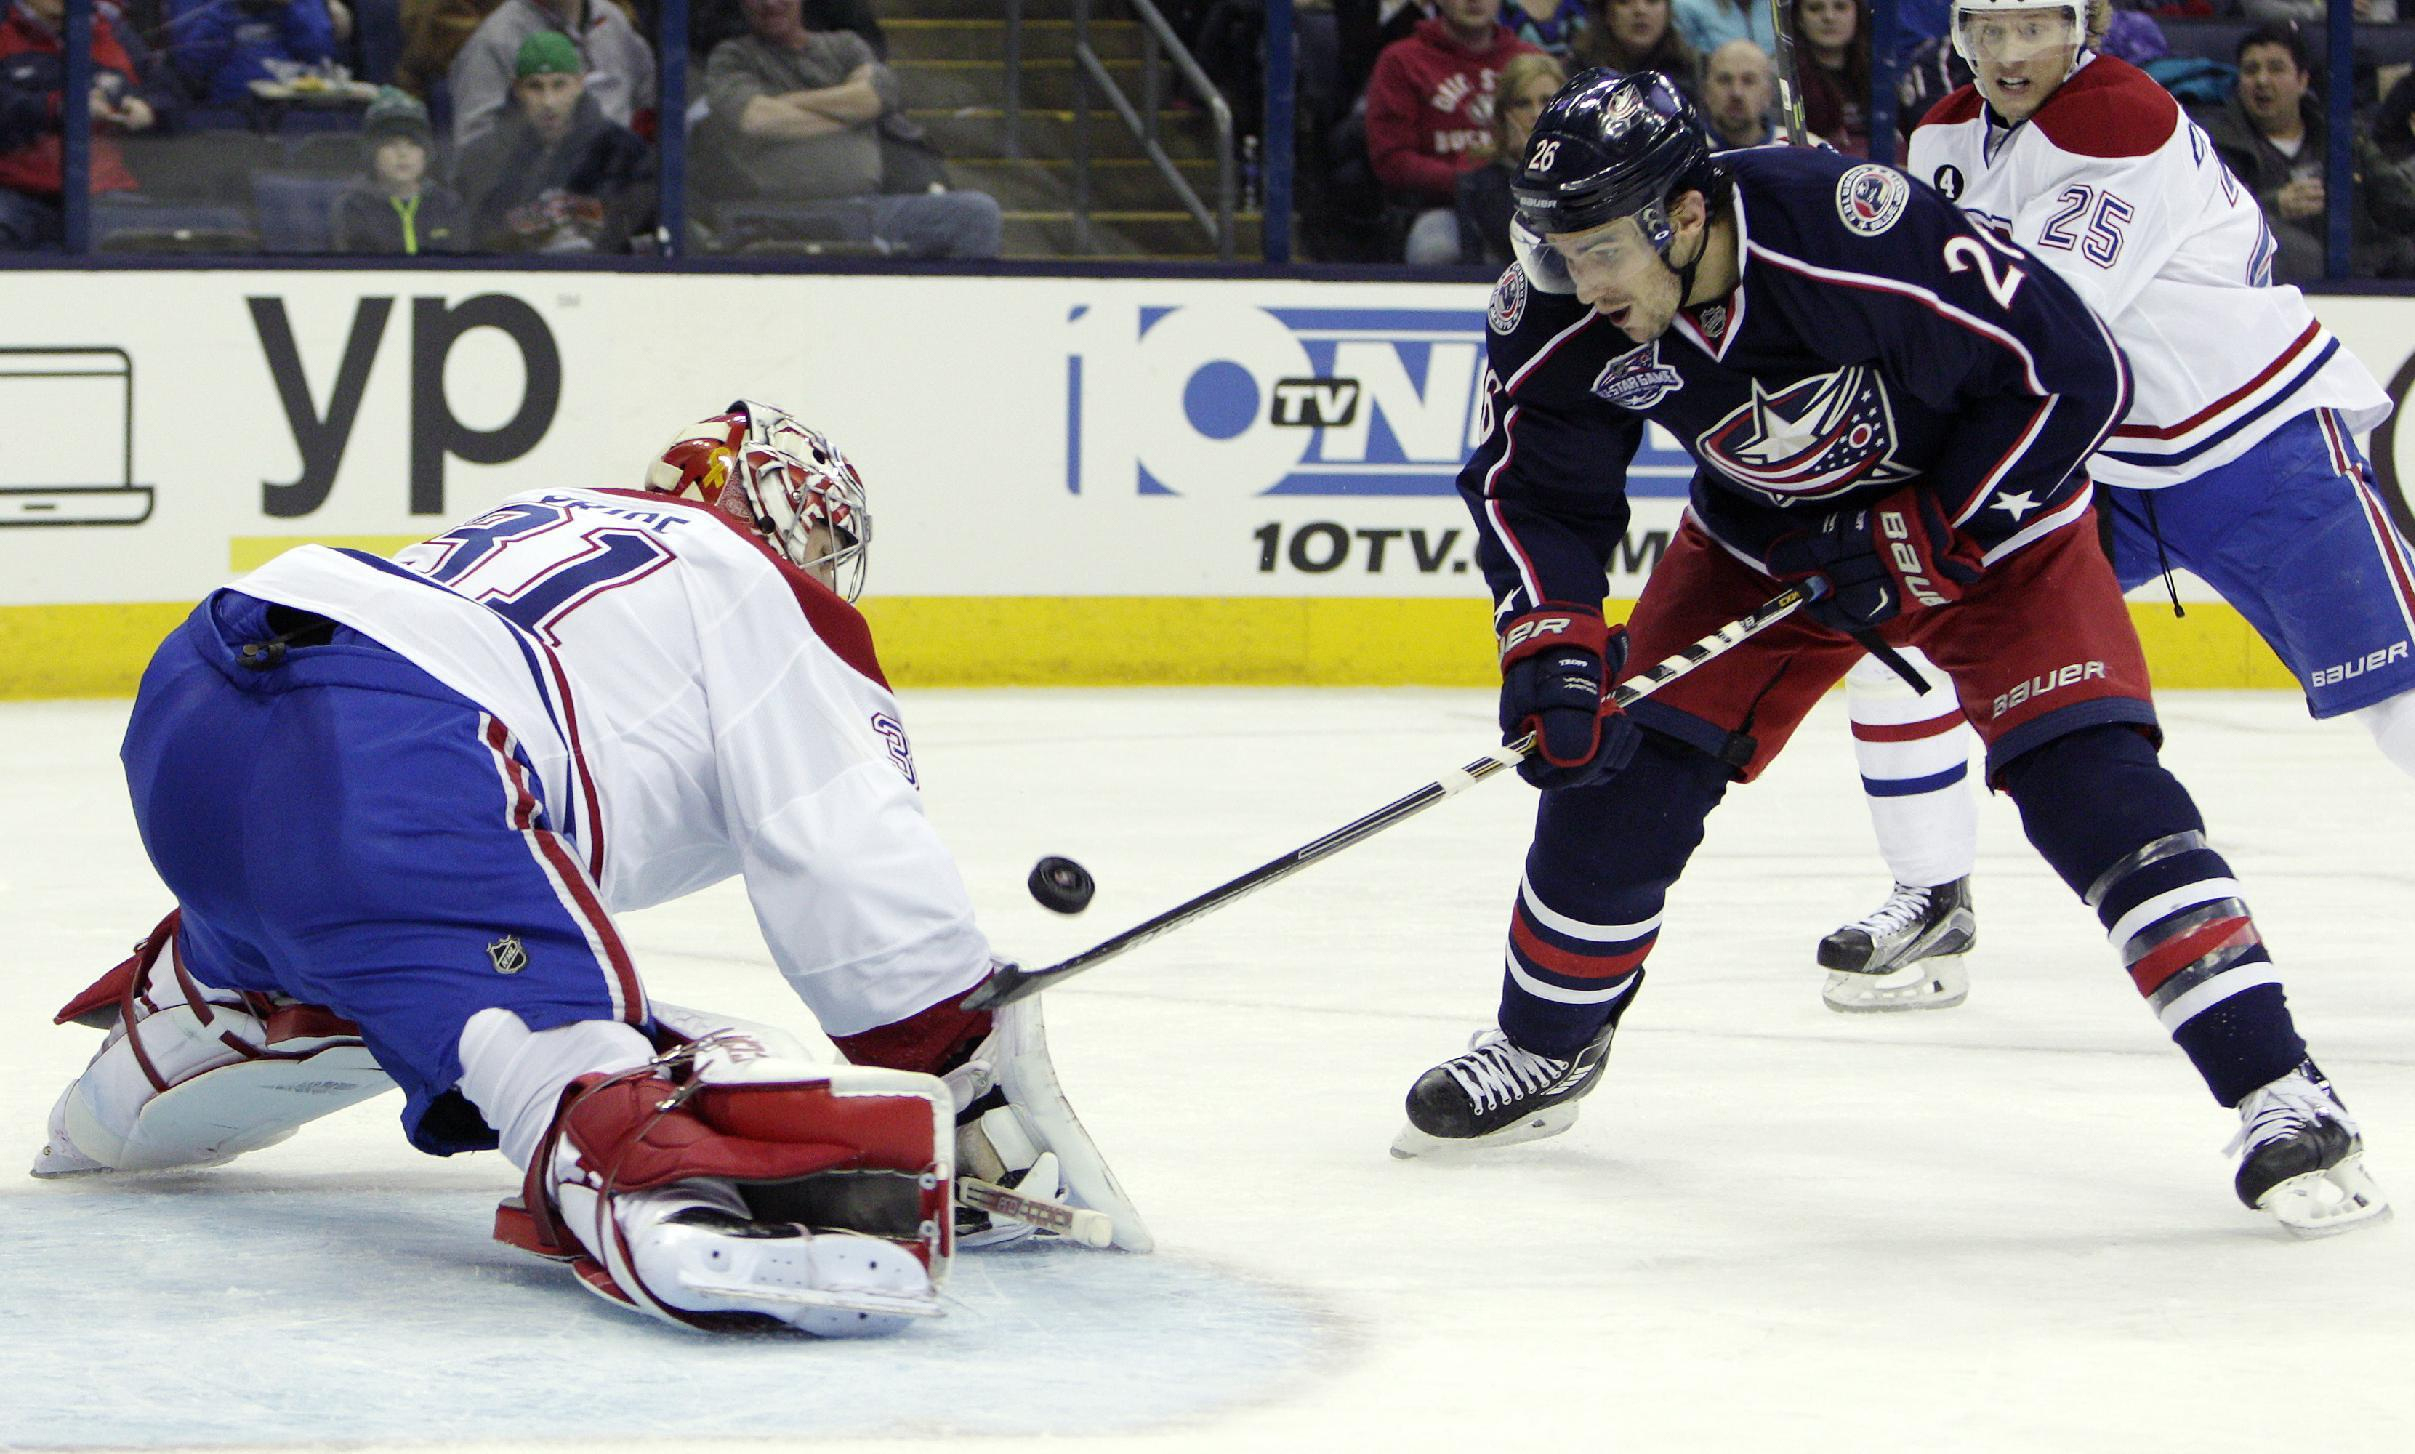 Price, Subban help Canadiens beat Blue Jackets 5-2